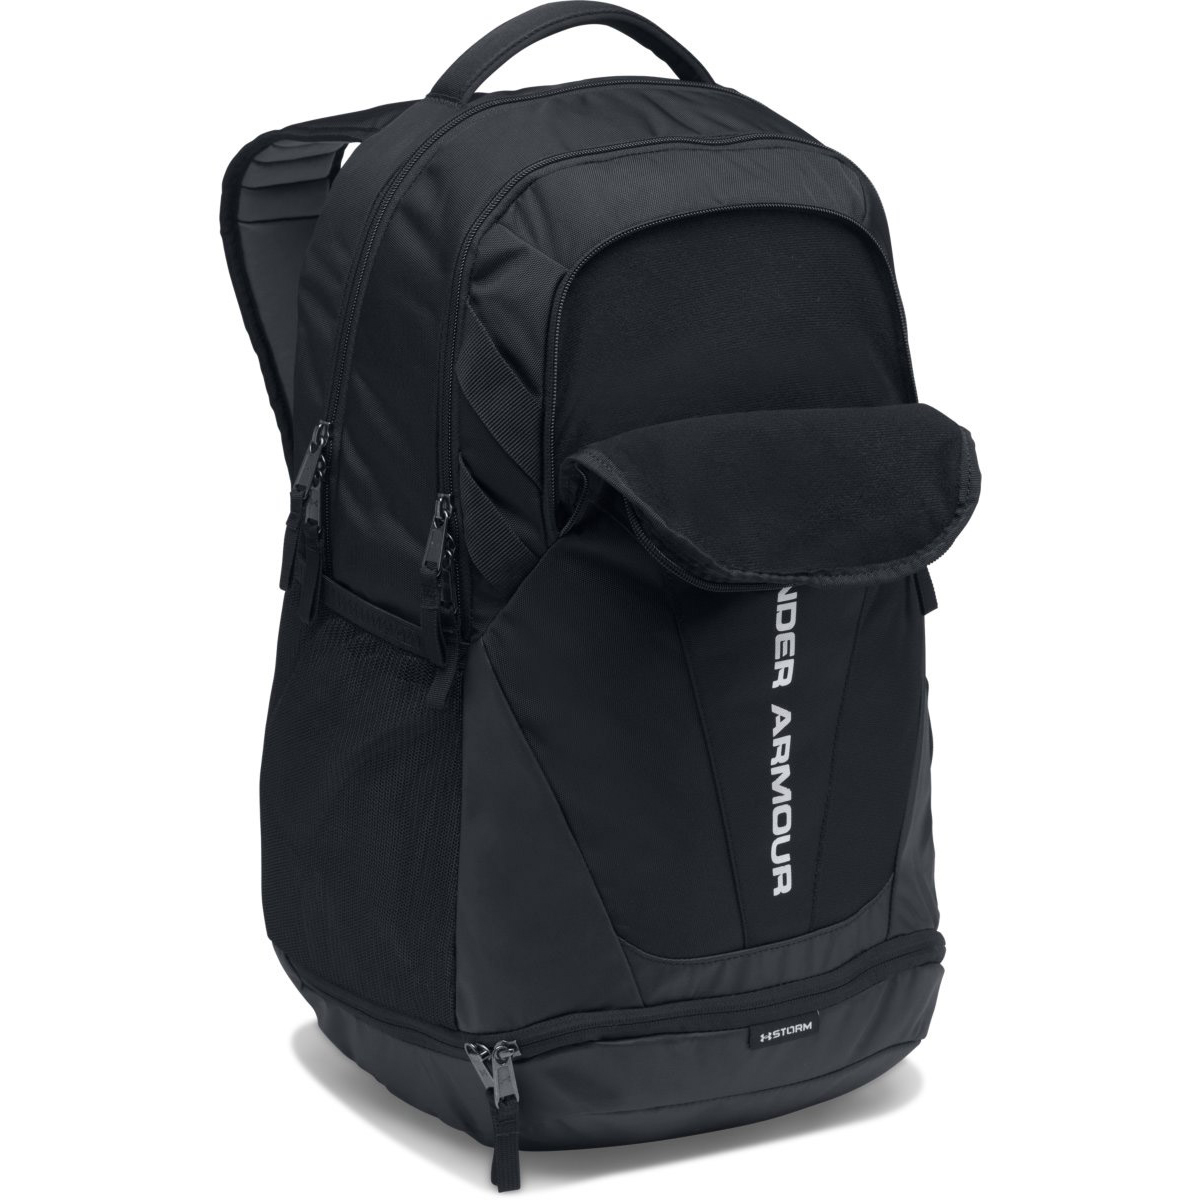 d96fb3b171 Under Armour Hustle 3.0 Backpack